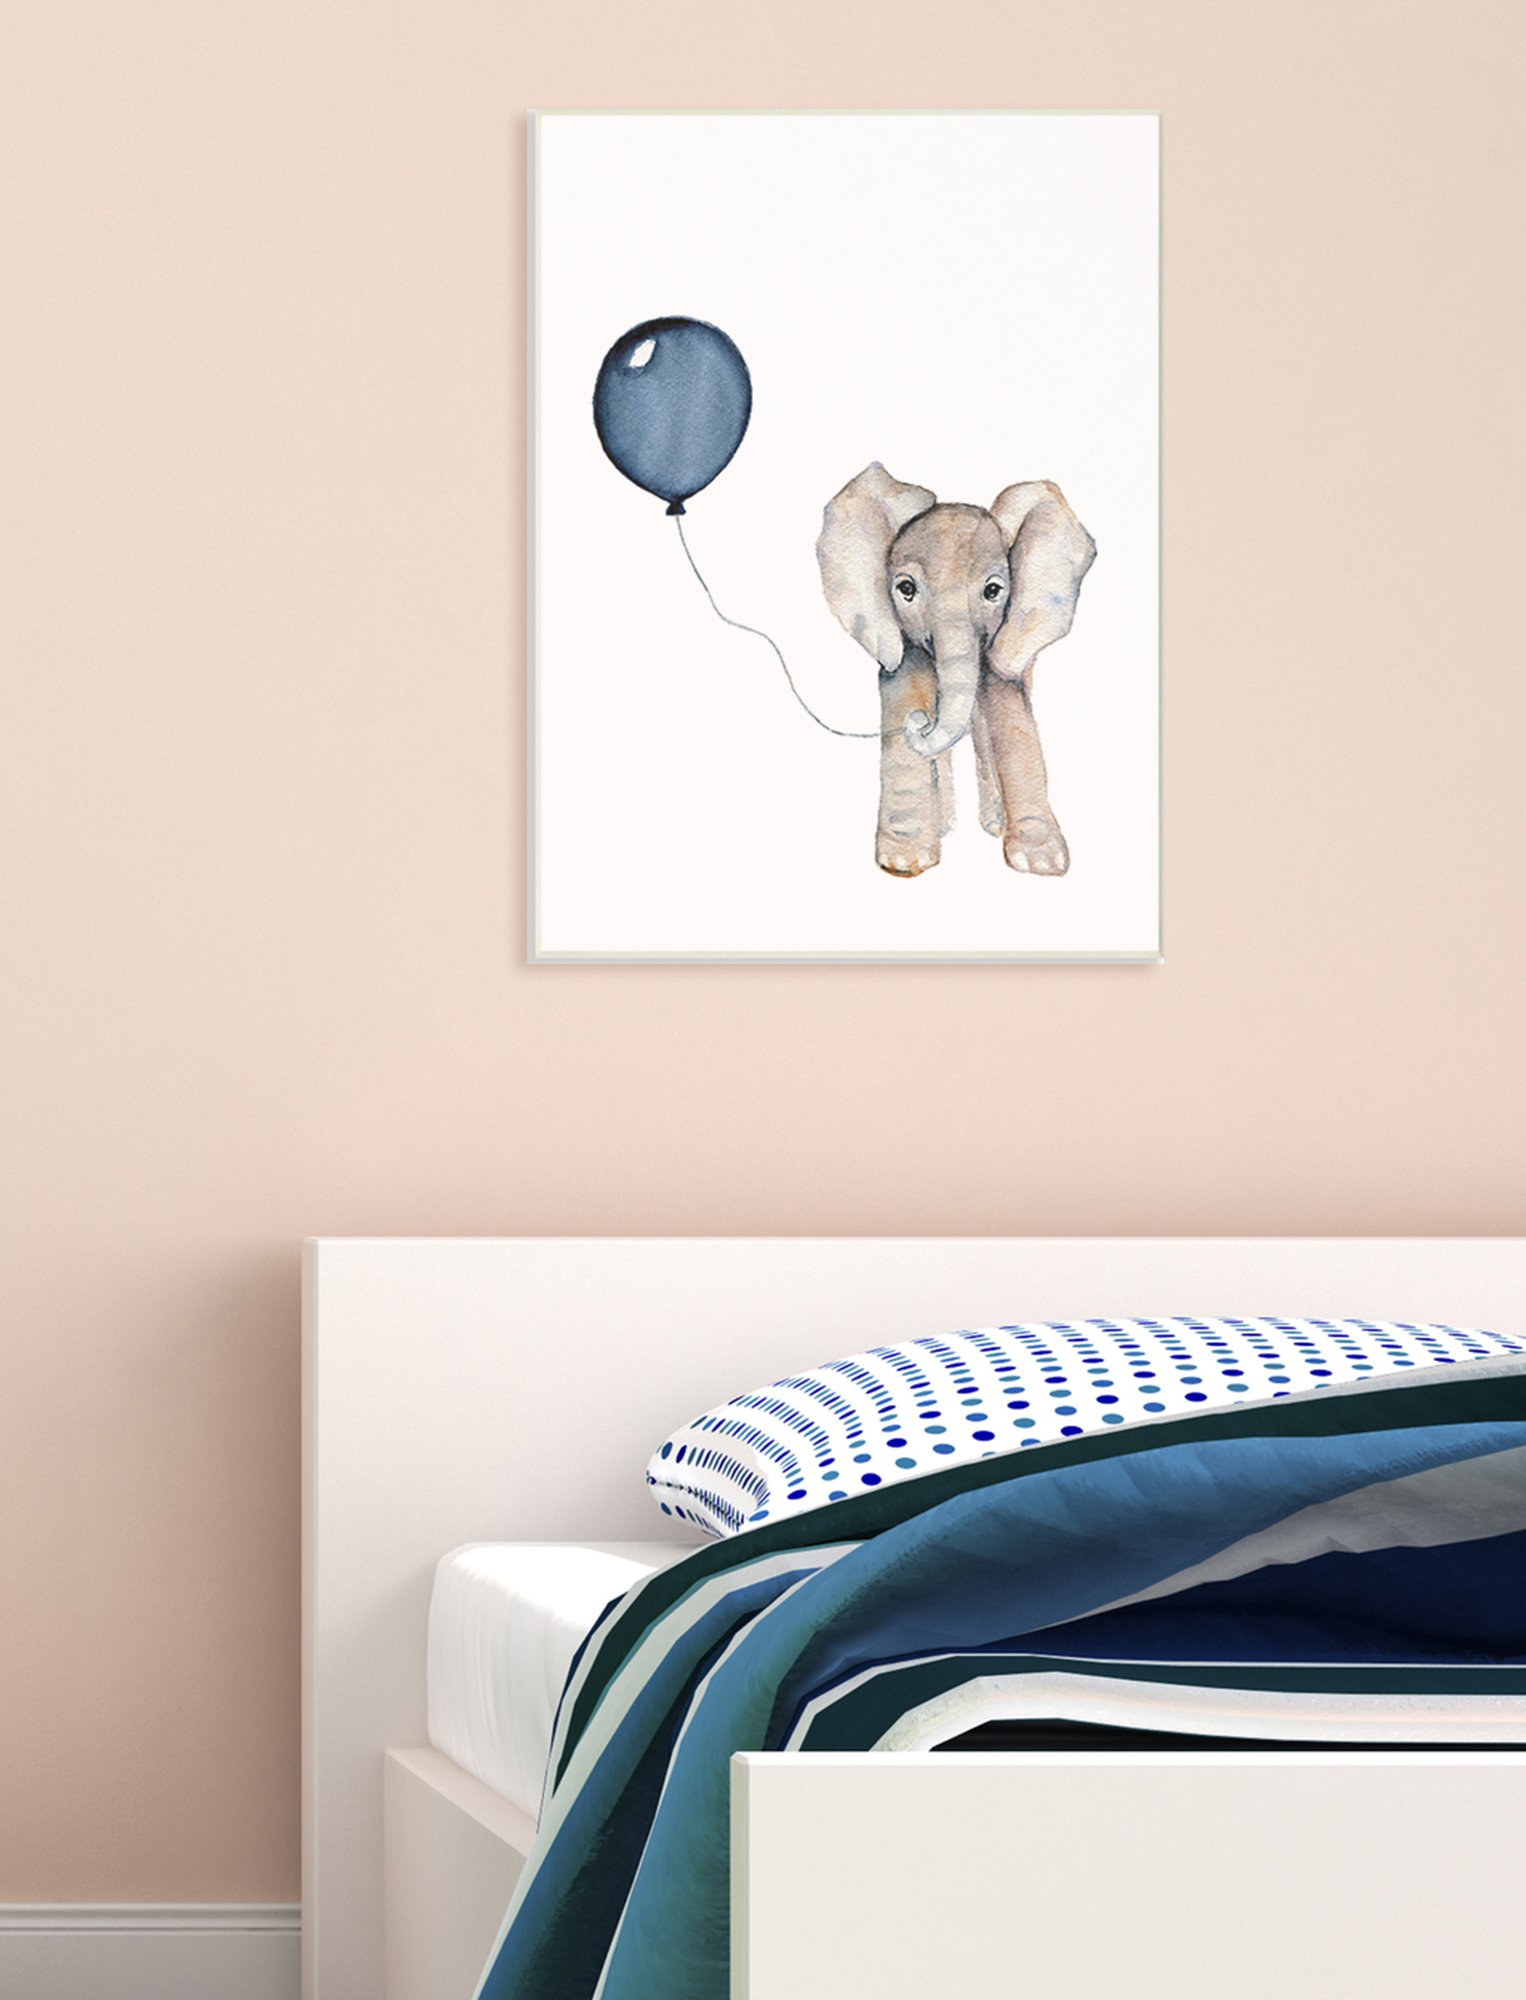 The Kids Room by Stupell Baby Elephant with Blue Balloon Wall Plaque Art, 10 x 15 by The Kids Room by Stupell (Image #2)